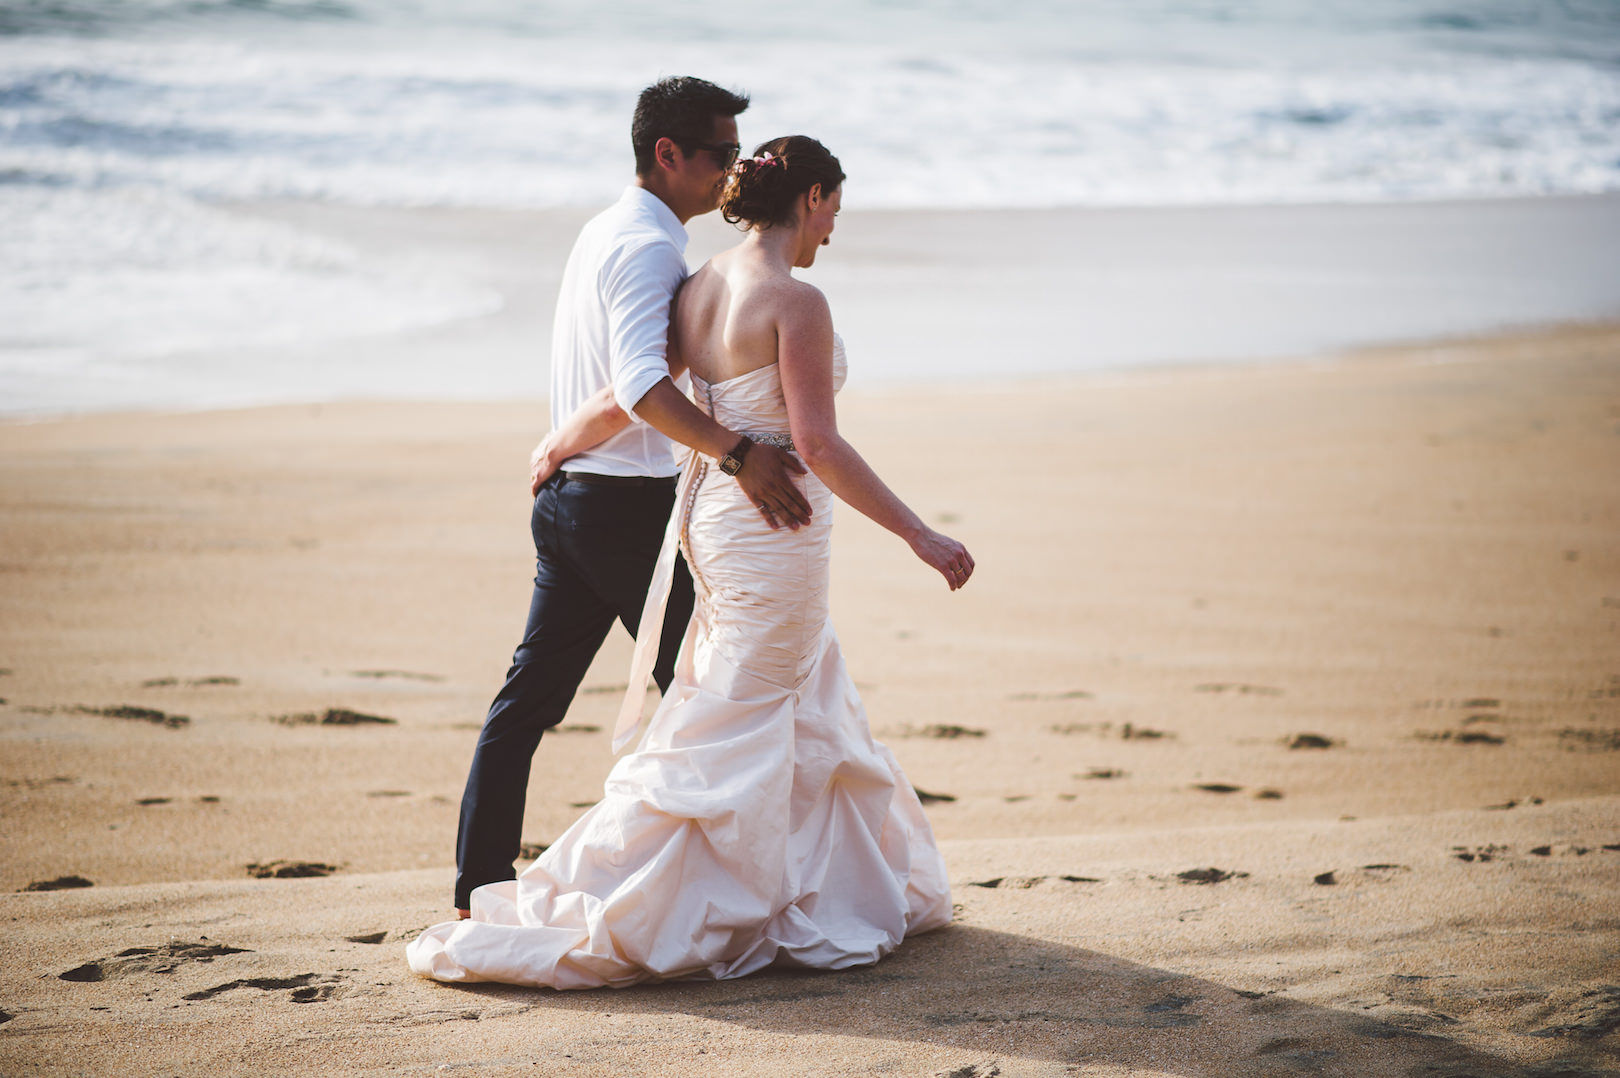 Steve & Mika - Sayulita - © Dallas Kolotylo Photography - 744